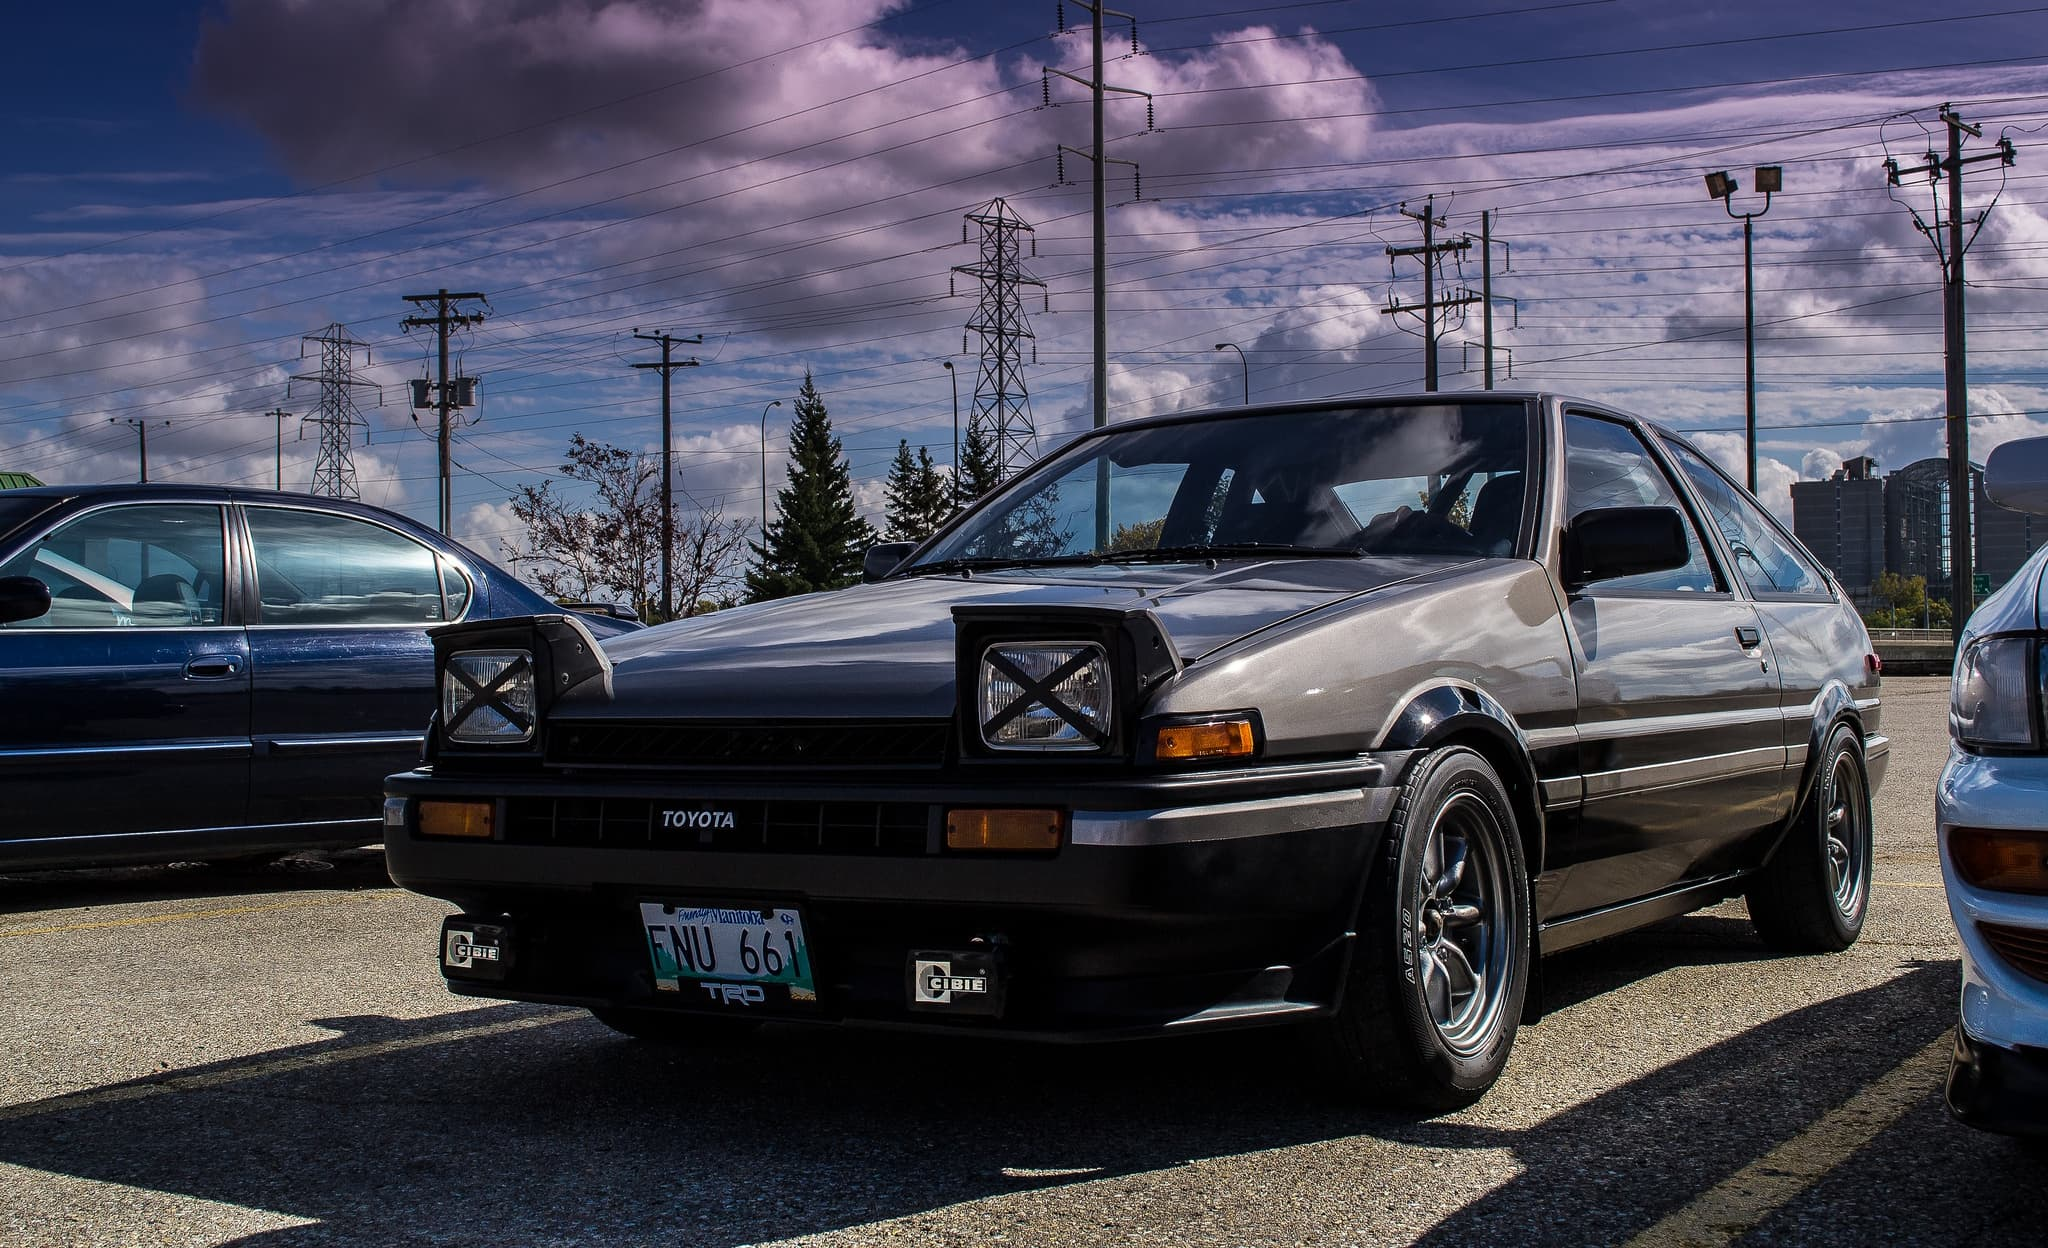 Toyota 4Runner Wheels >> Toyota Corolla AE86 wallpapers HD High Resolution